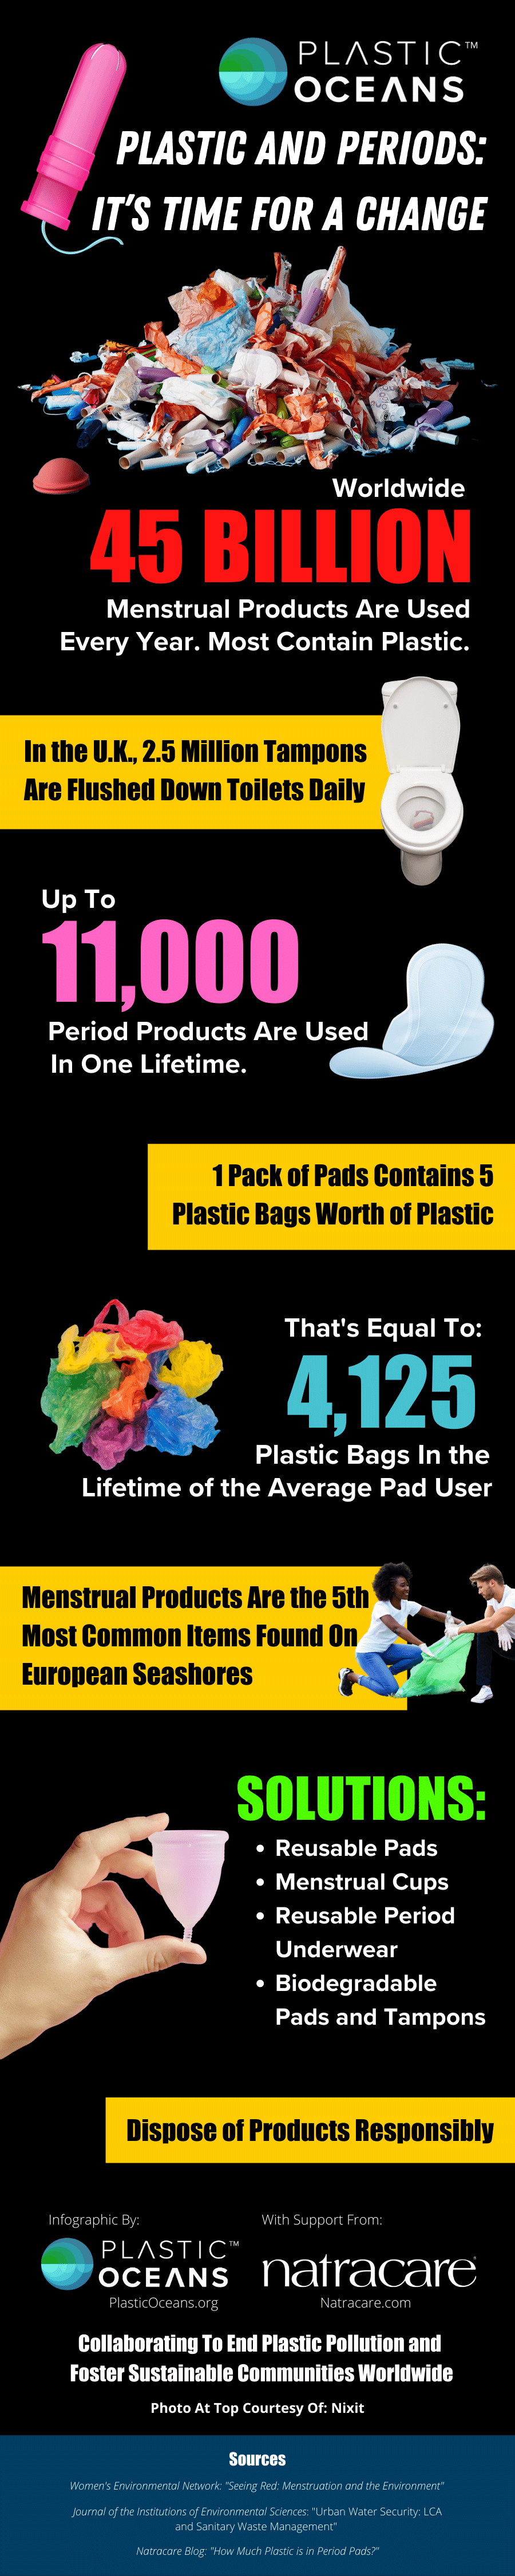 Infographic on Period Products and Plastic